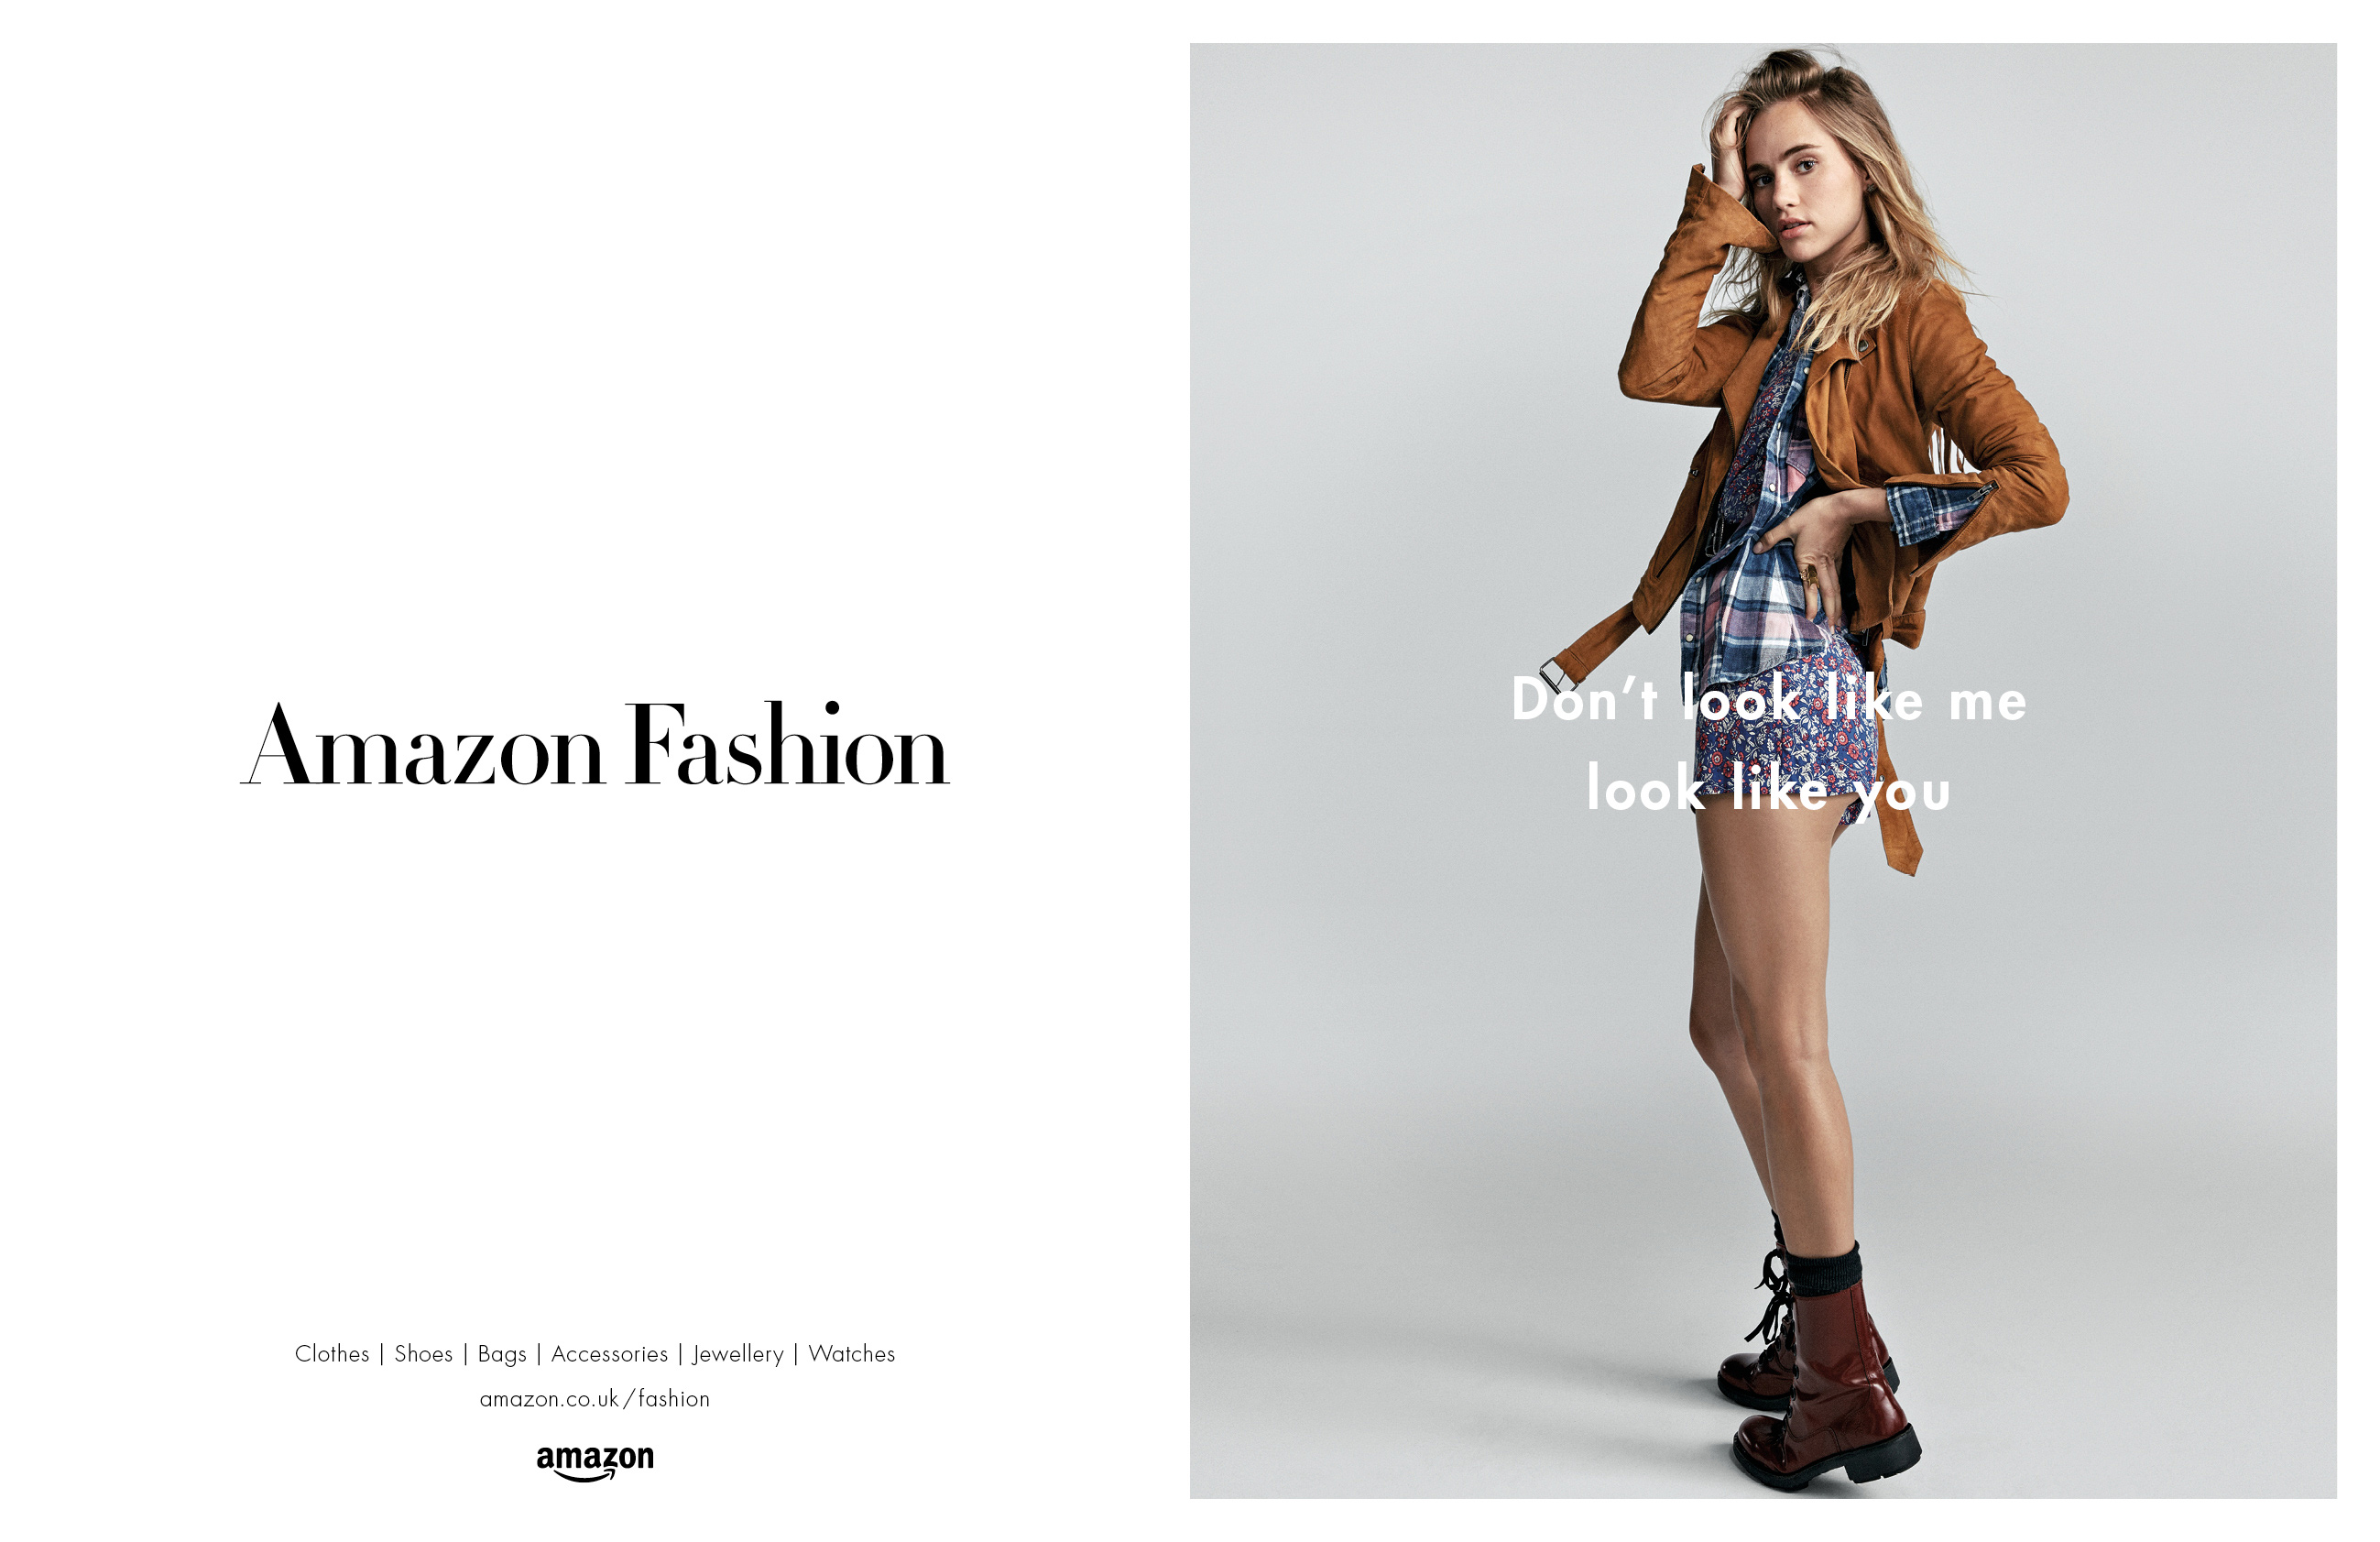 english project fashion Fun esl efl worksheets, activities and games to help teach your students about clothes and fashion.